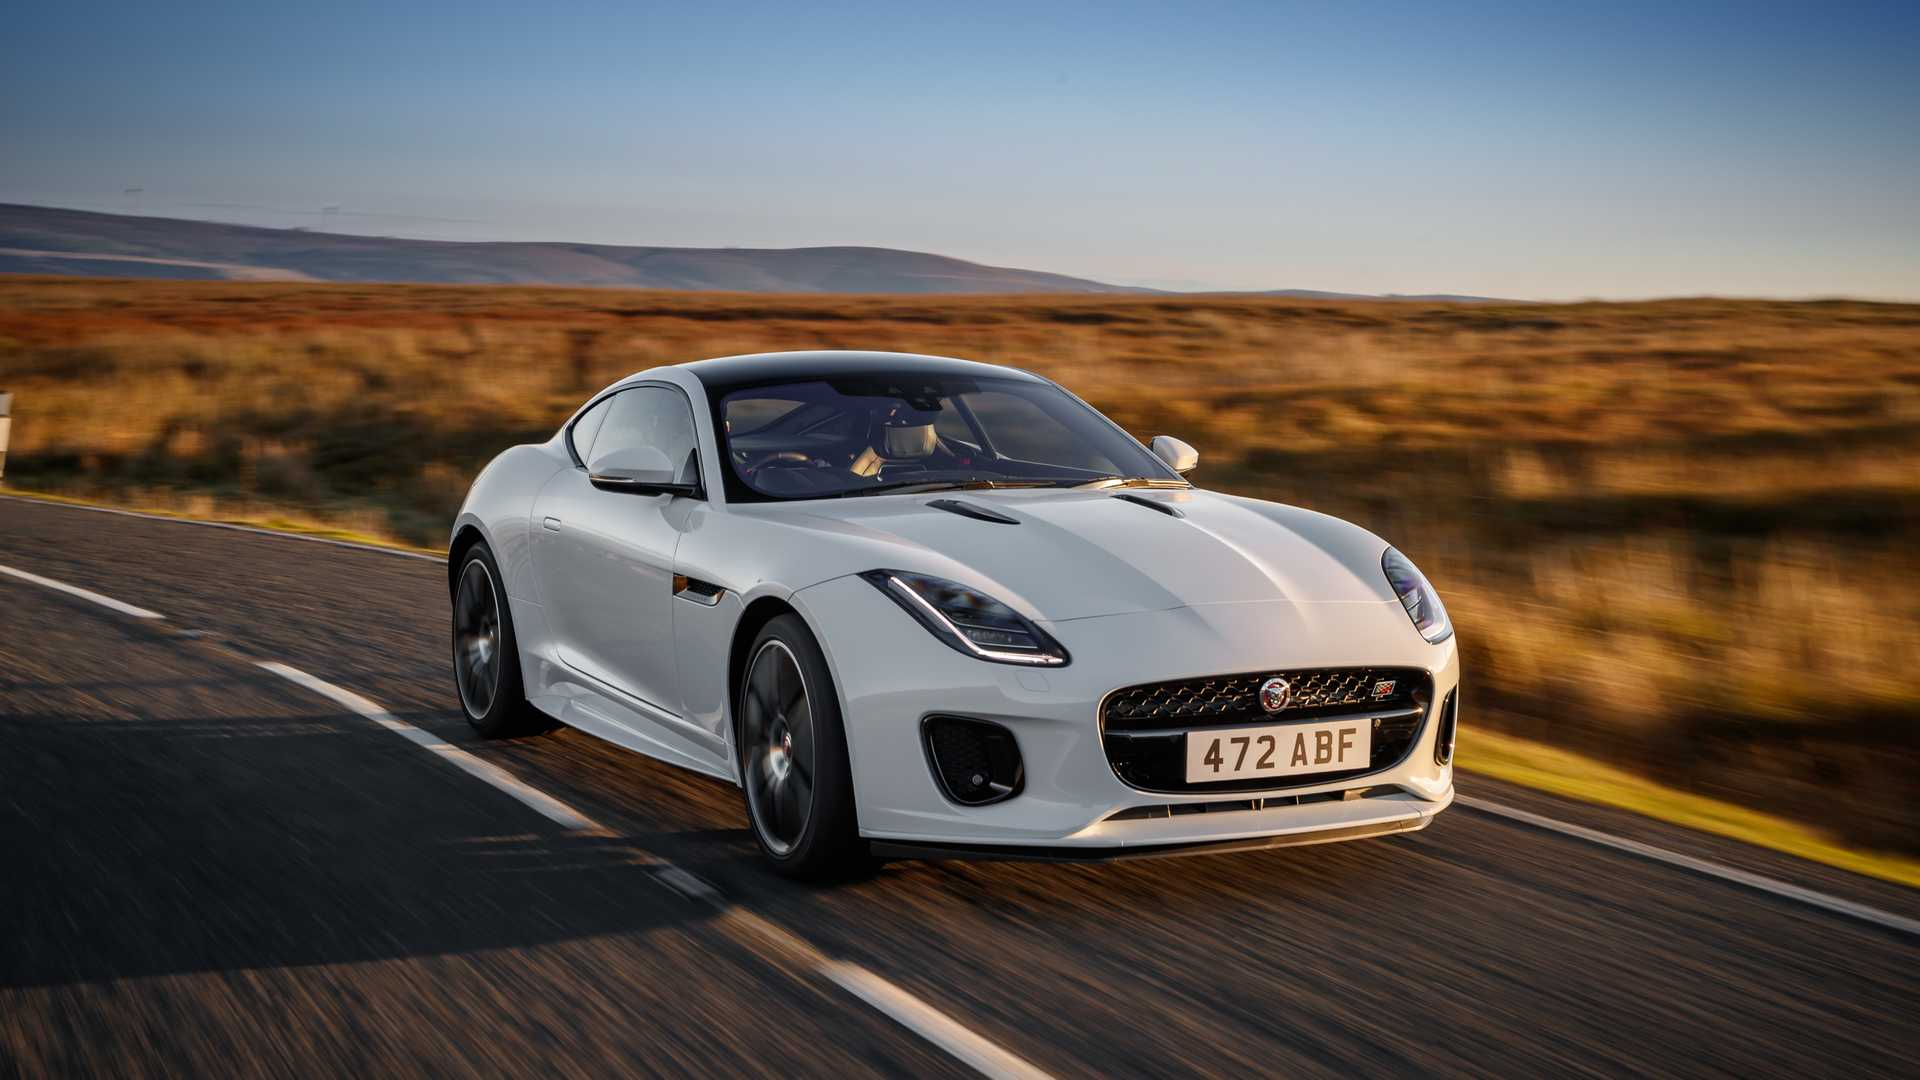 2020-jaguar-f-type-checkered-flag-edition (4)